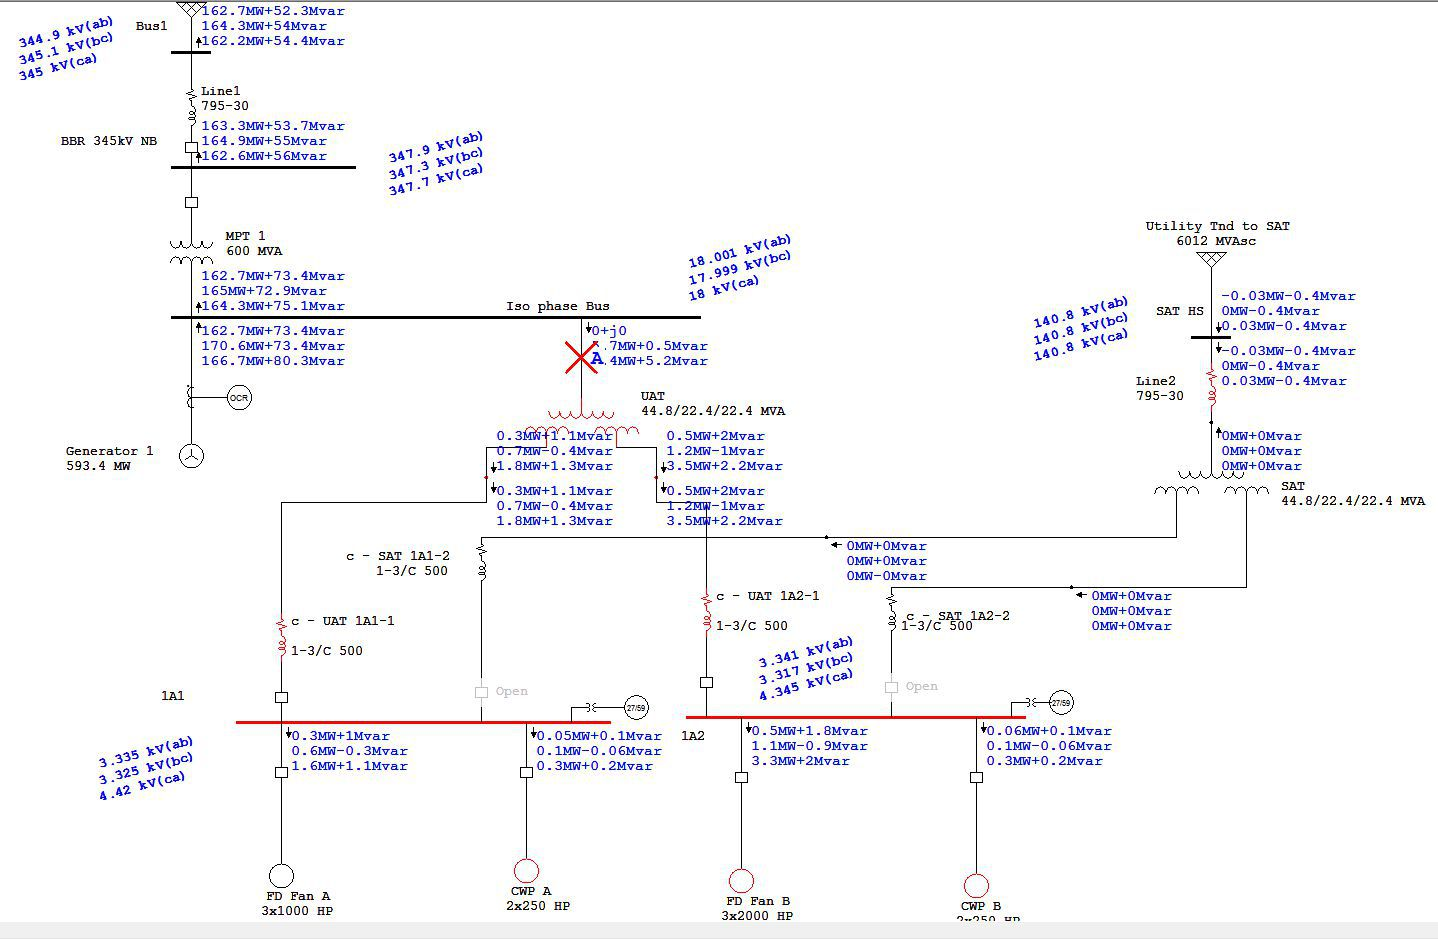 Open Phase Fault Analysis